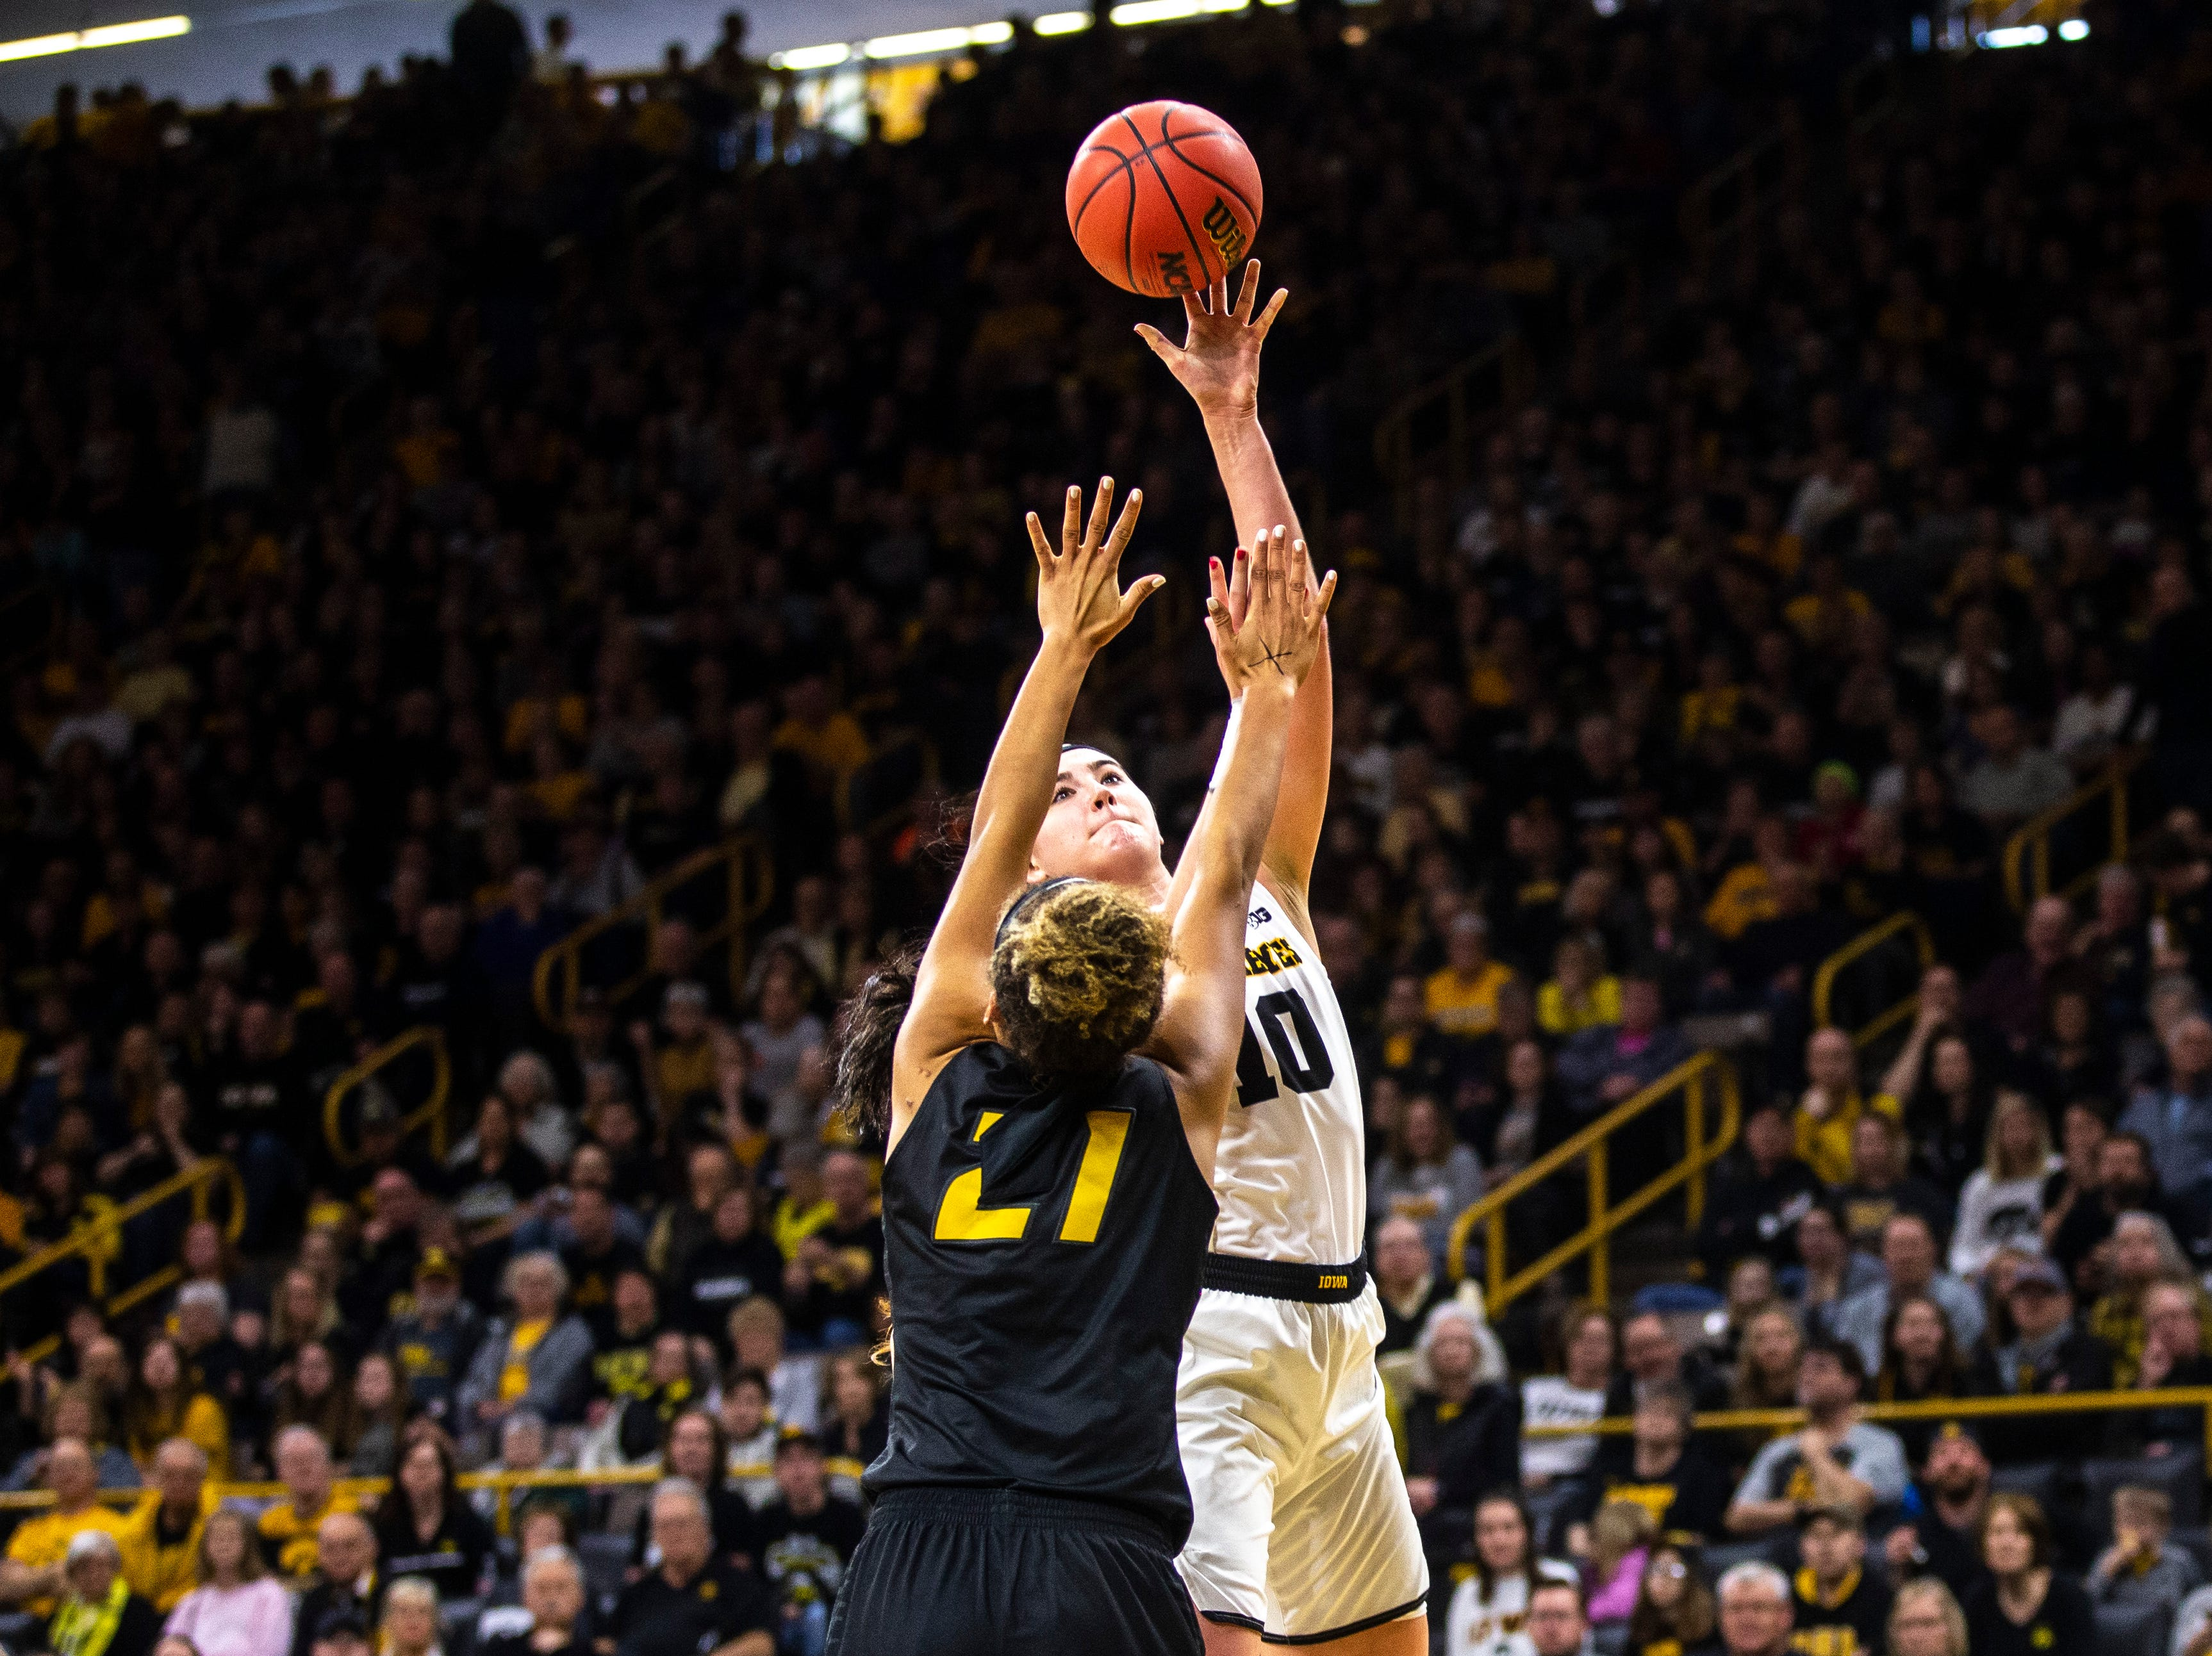 Iowa center Megan Gustafson (10) makes a basket against Missouri forward Cierra Porter (21) during a NCAA women's basketball tournament second-round game, Sunday, March 24, 2019, at Carver-Hawkeye Arena in Iowa City, Iowa.